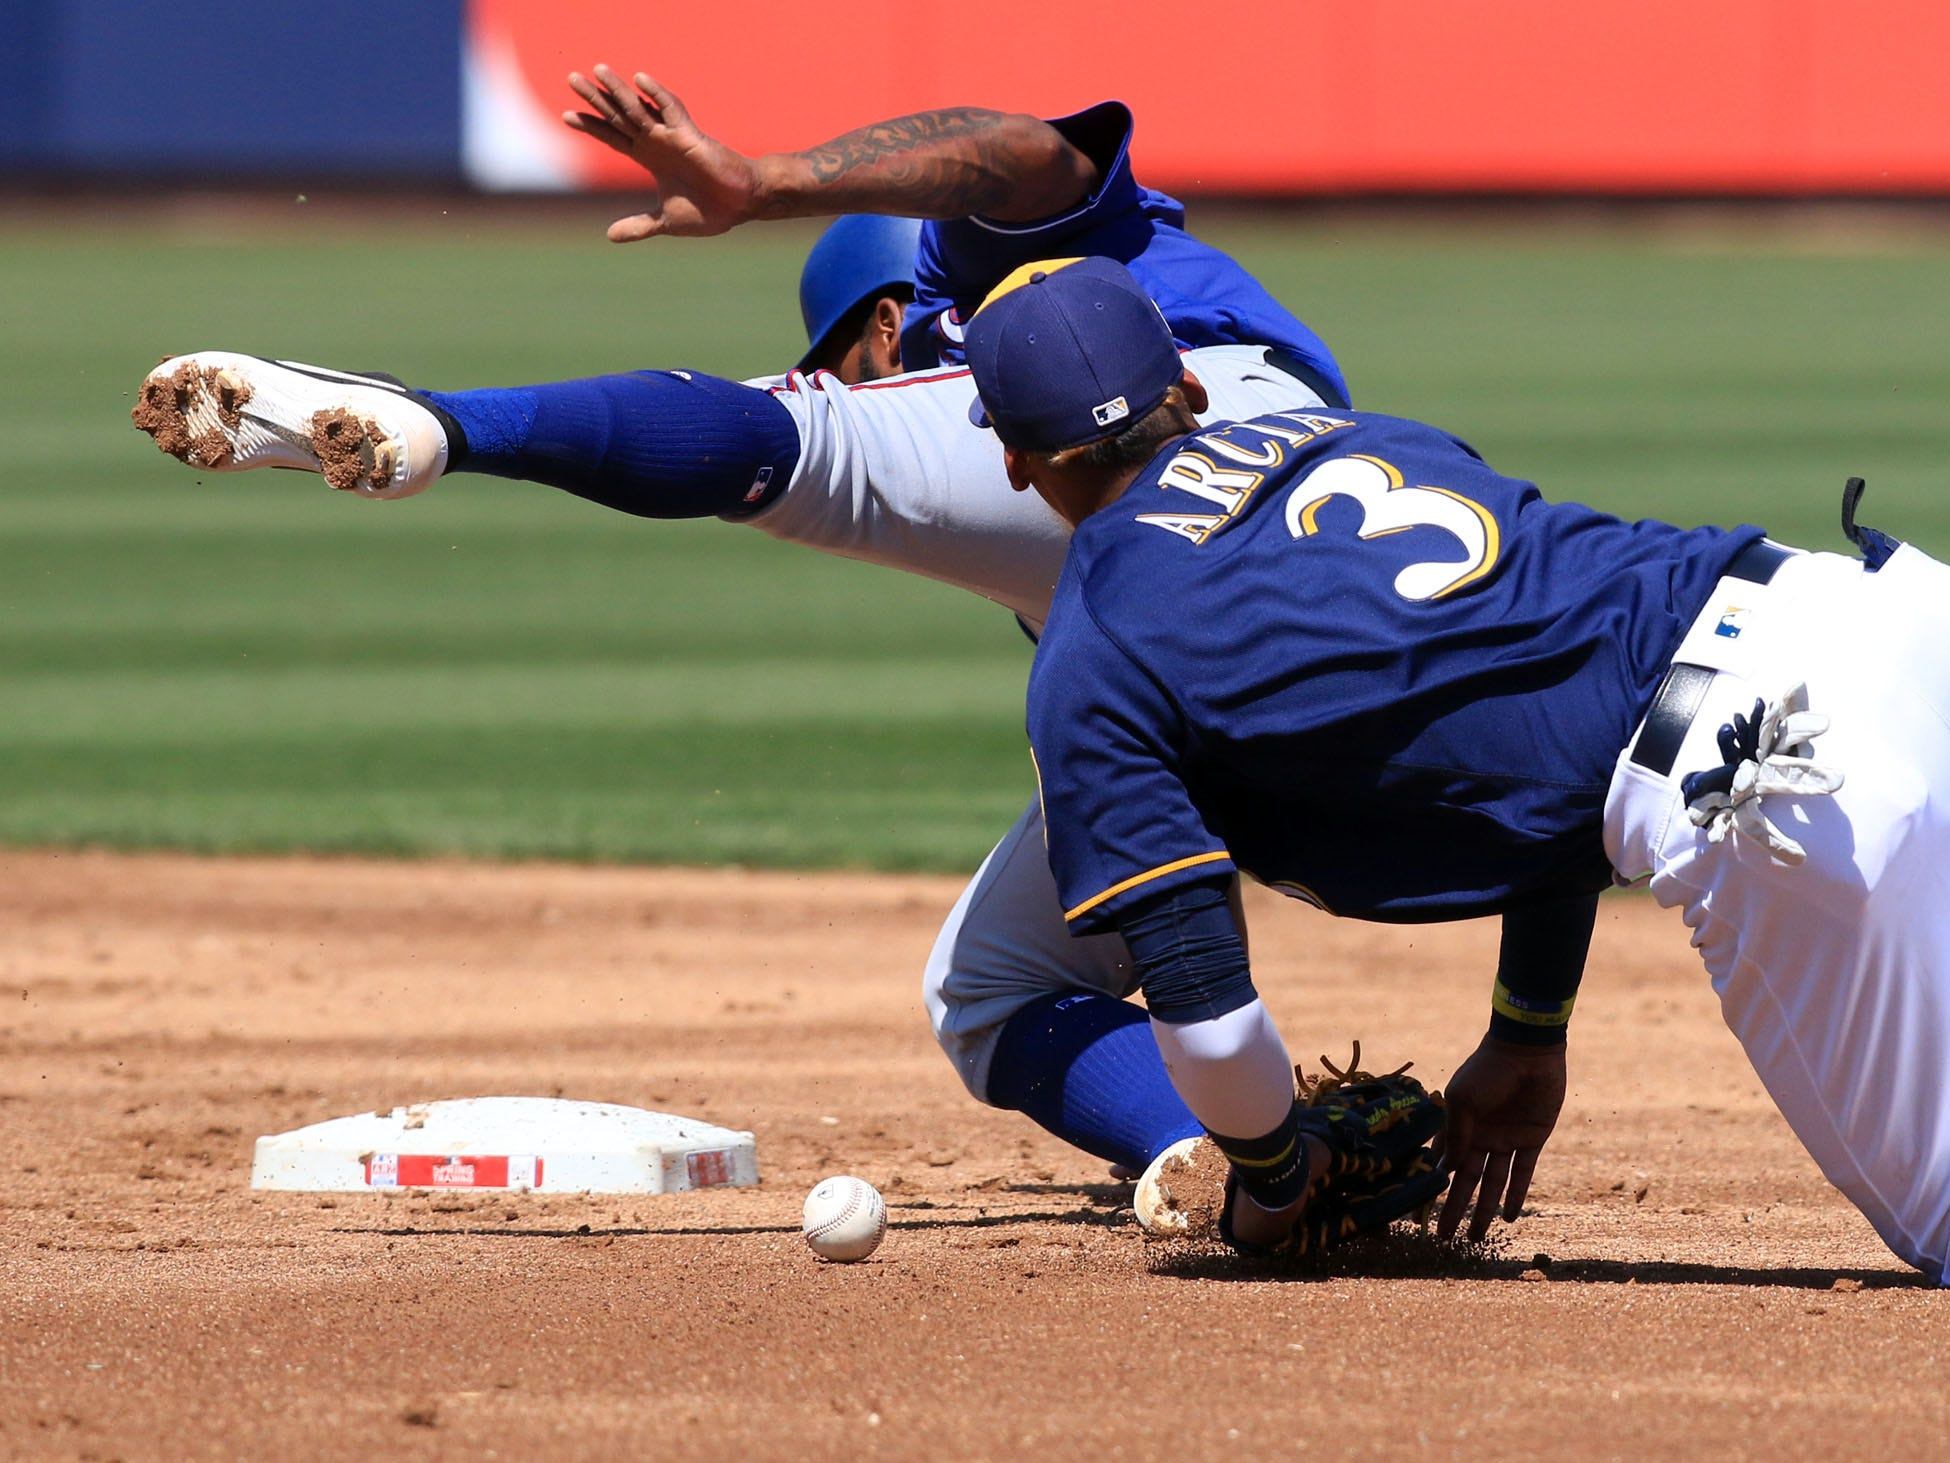 Brewers infielder Orlando Arcia is unable to make a play as he collides Danny Santana of Texas Tuesday afternoon.